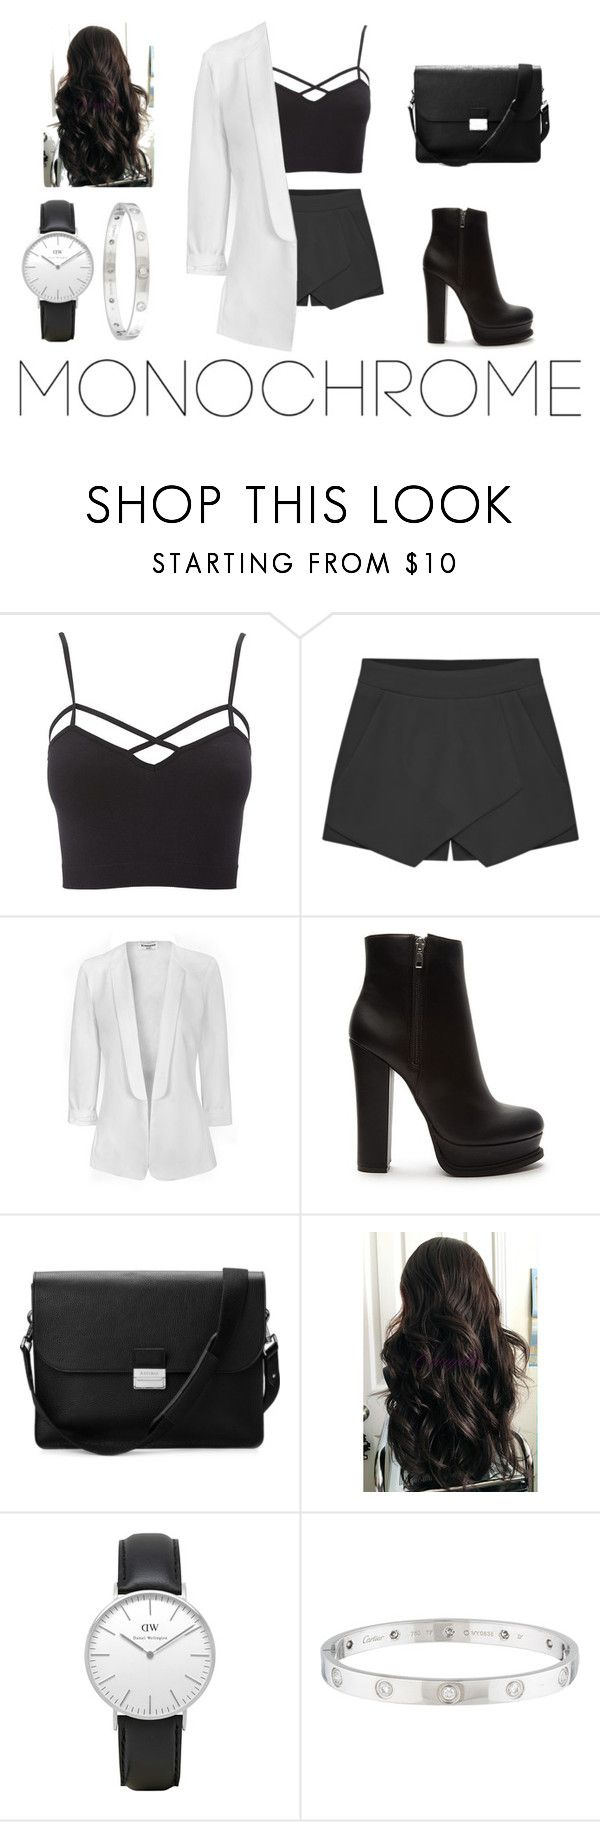 """""""Make It Monochrome"""" by lilyrose2000 on Polyvore featuring Charlotte Russe, Glamorous, Forever 21, Aspinal of London, Daniel Wellington, Cartier and monochrome"""